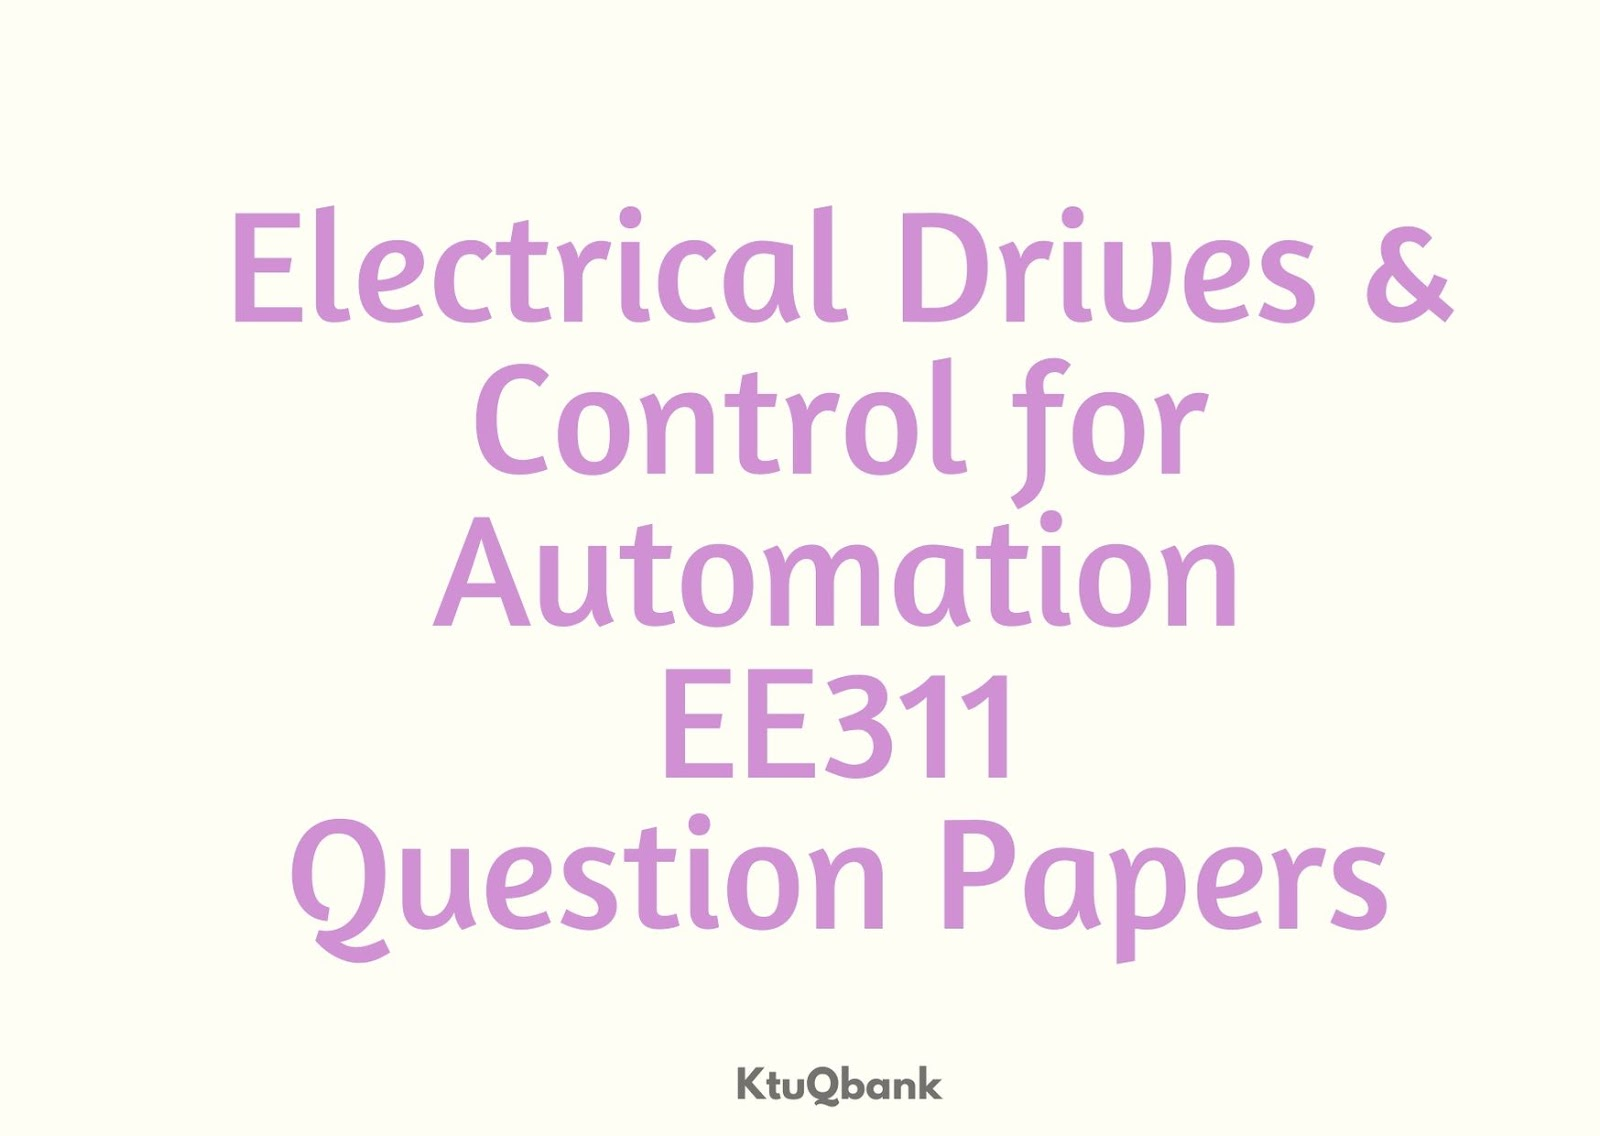 Electrical Drives & Control for Automation | EE311 | Question Papers (2015 batch)